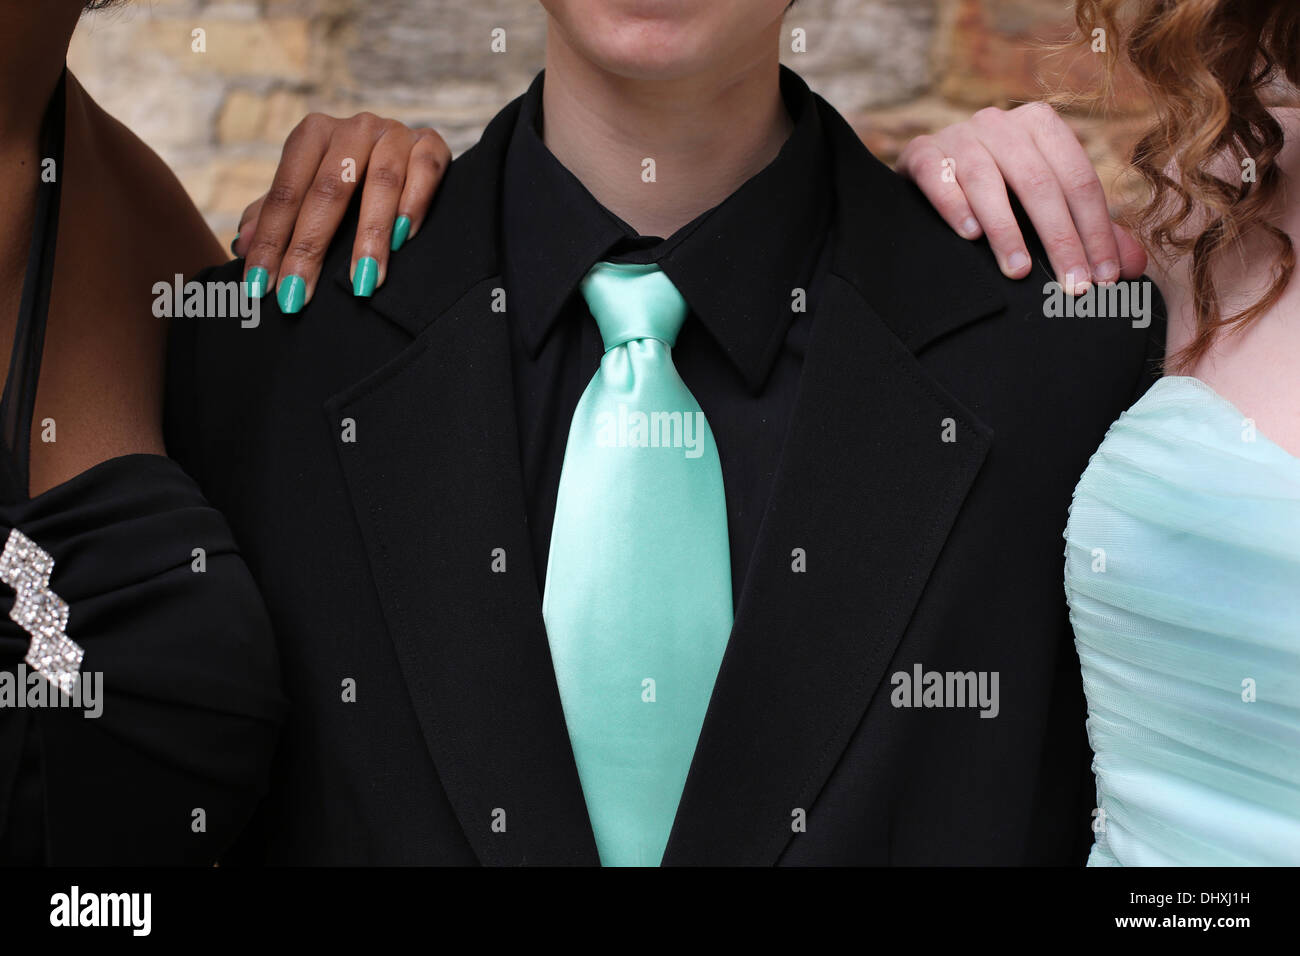 Formal Clothes Stock Photos & Formal Clothes Stock Images - Alamy